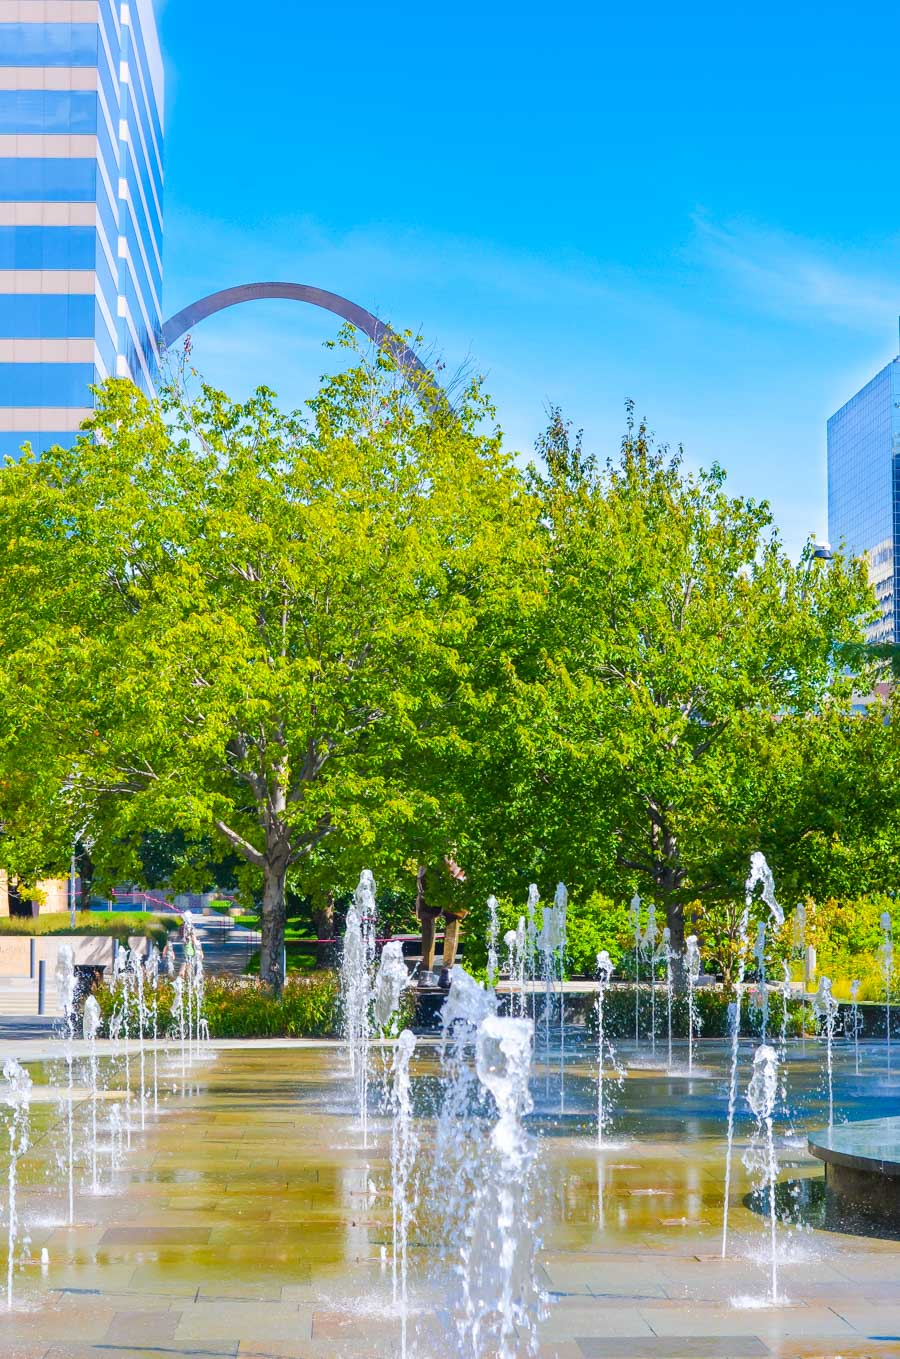 What to Do in St. Louis | 2 Day Travel Guide